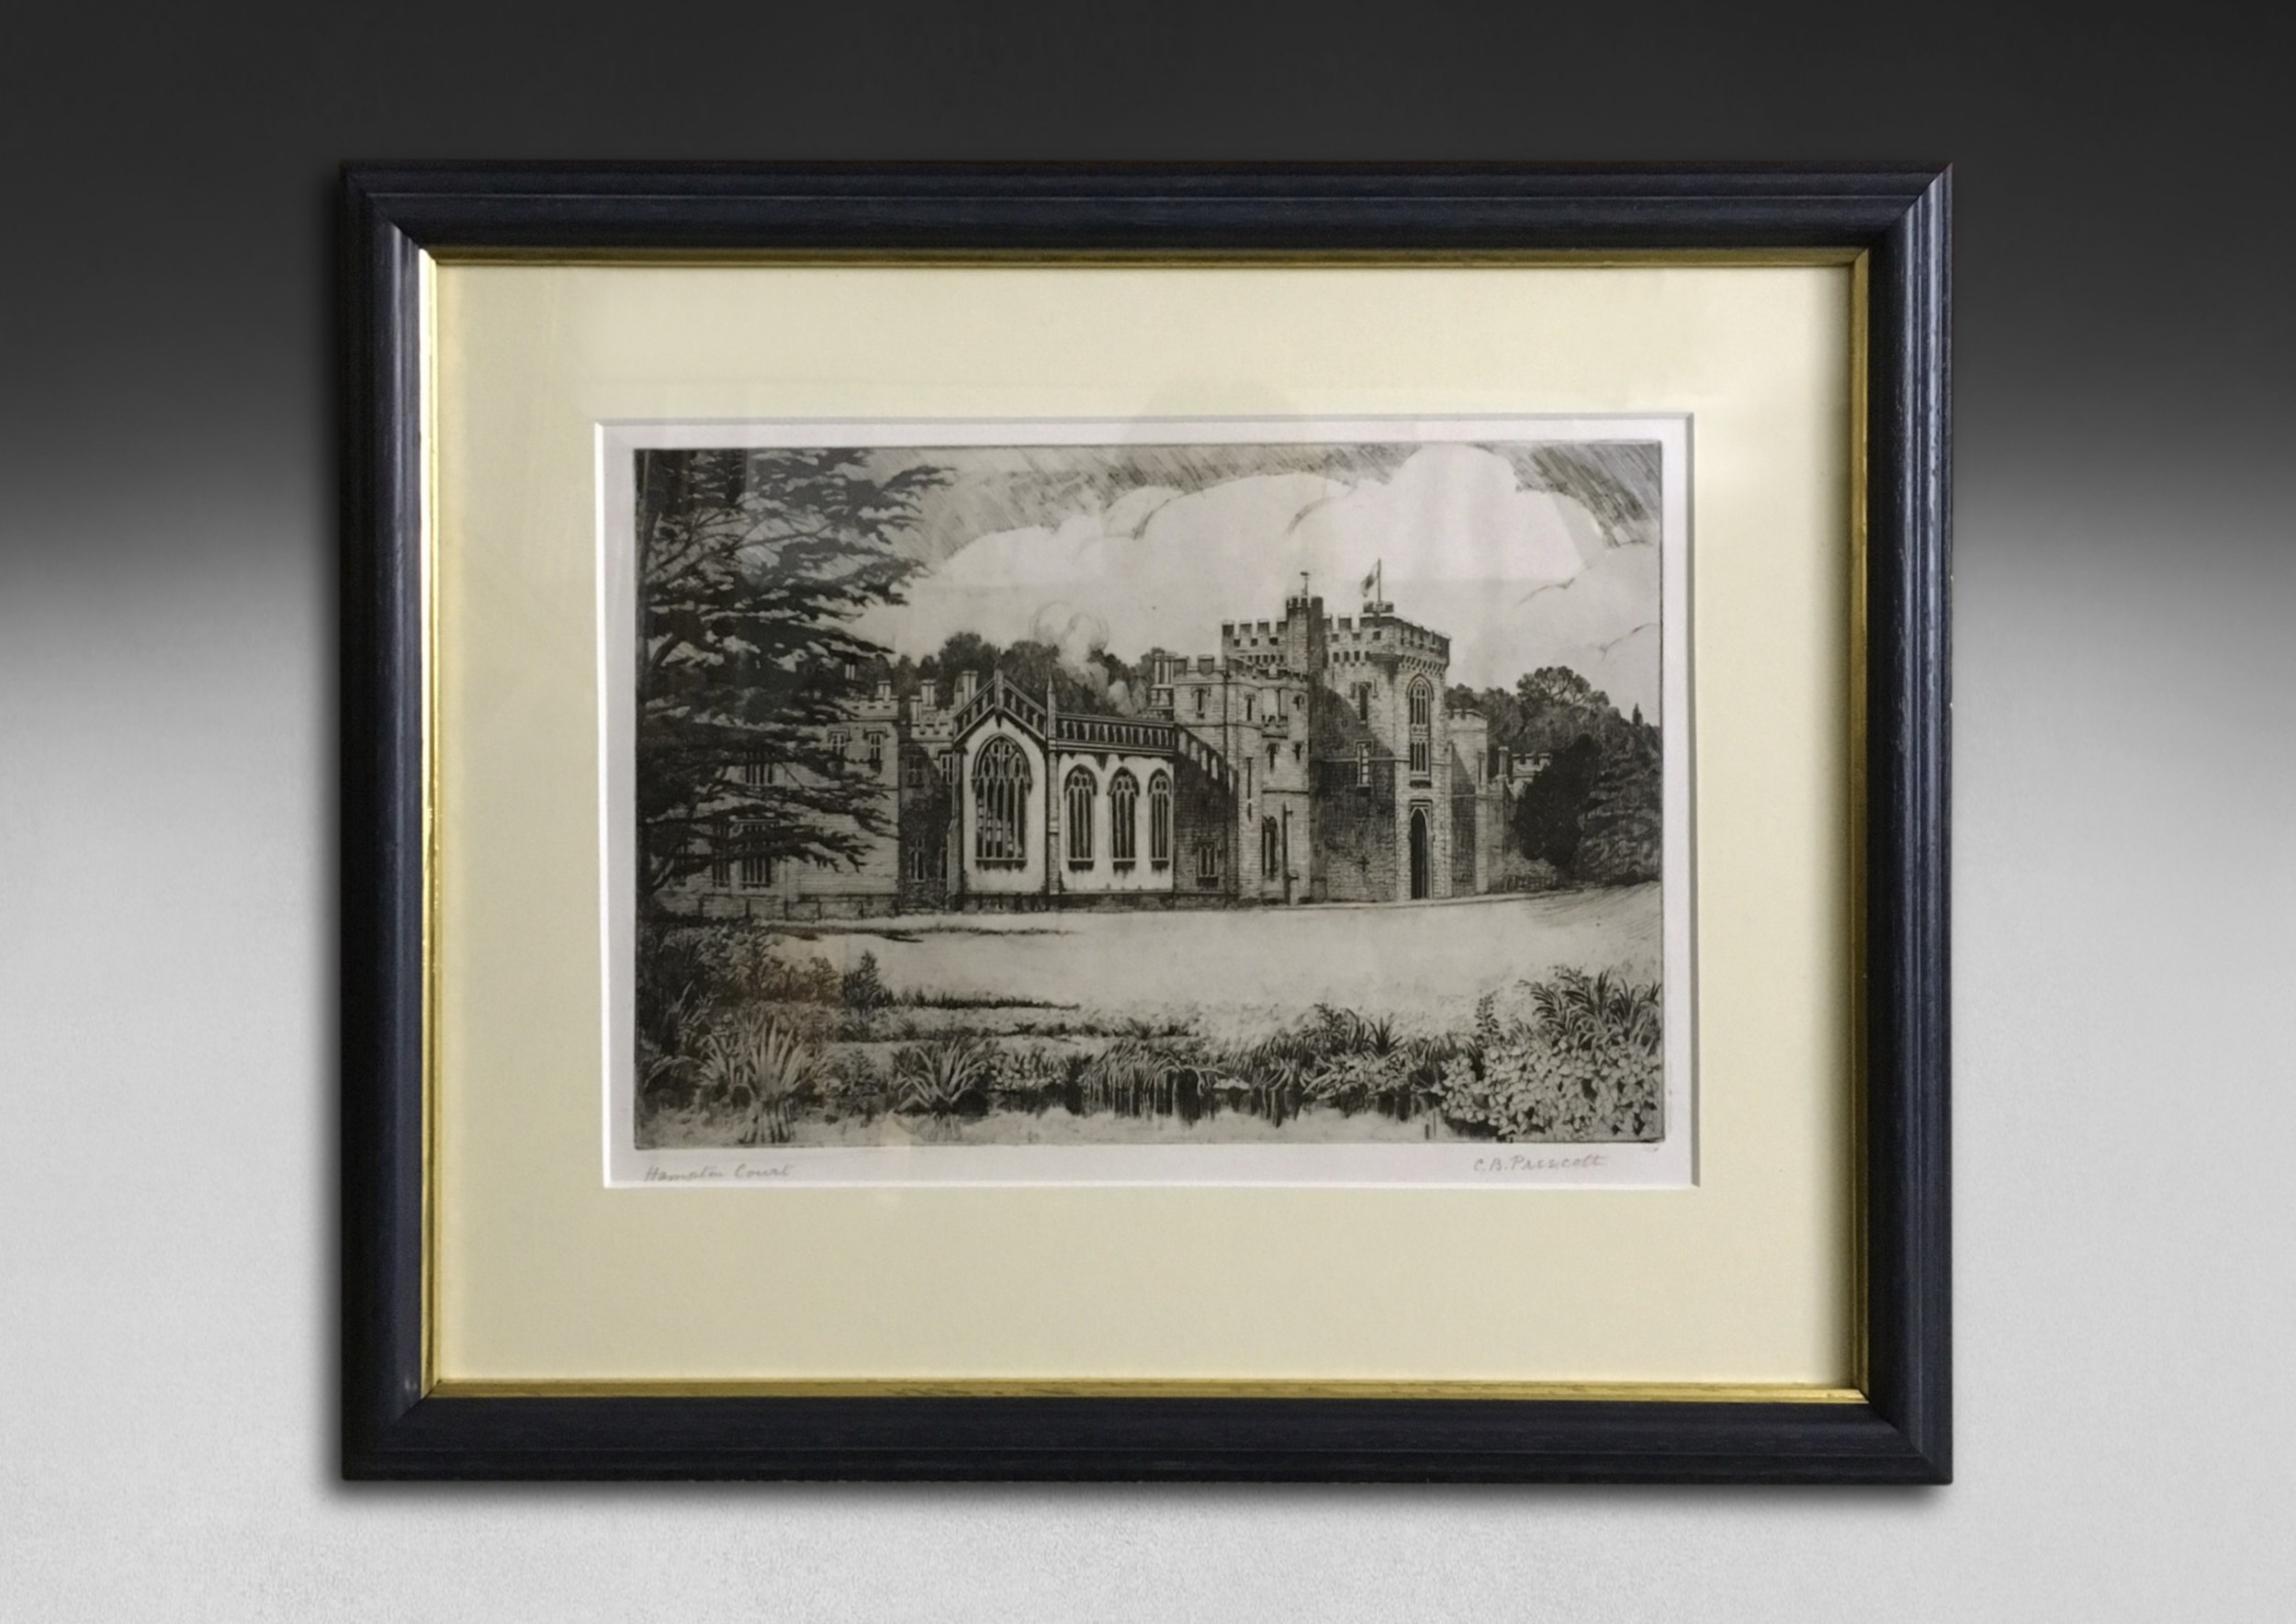 early 20th century black and white etching cb prescott hampton court herefordshire